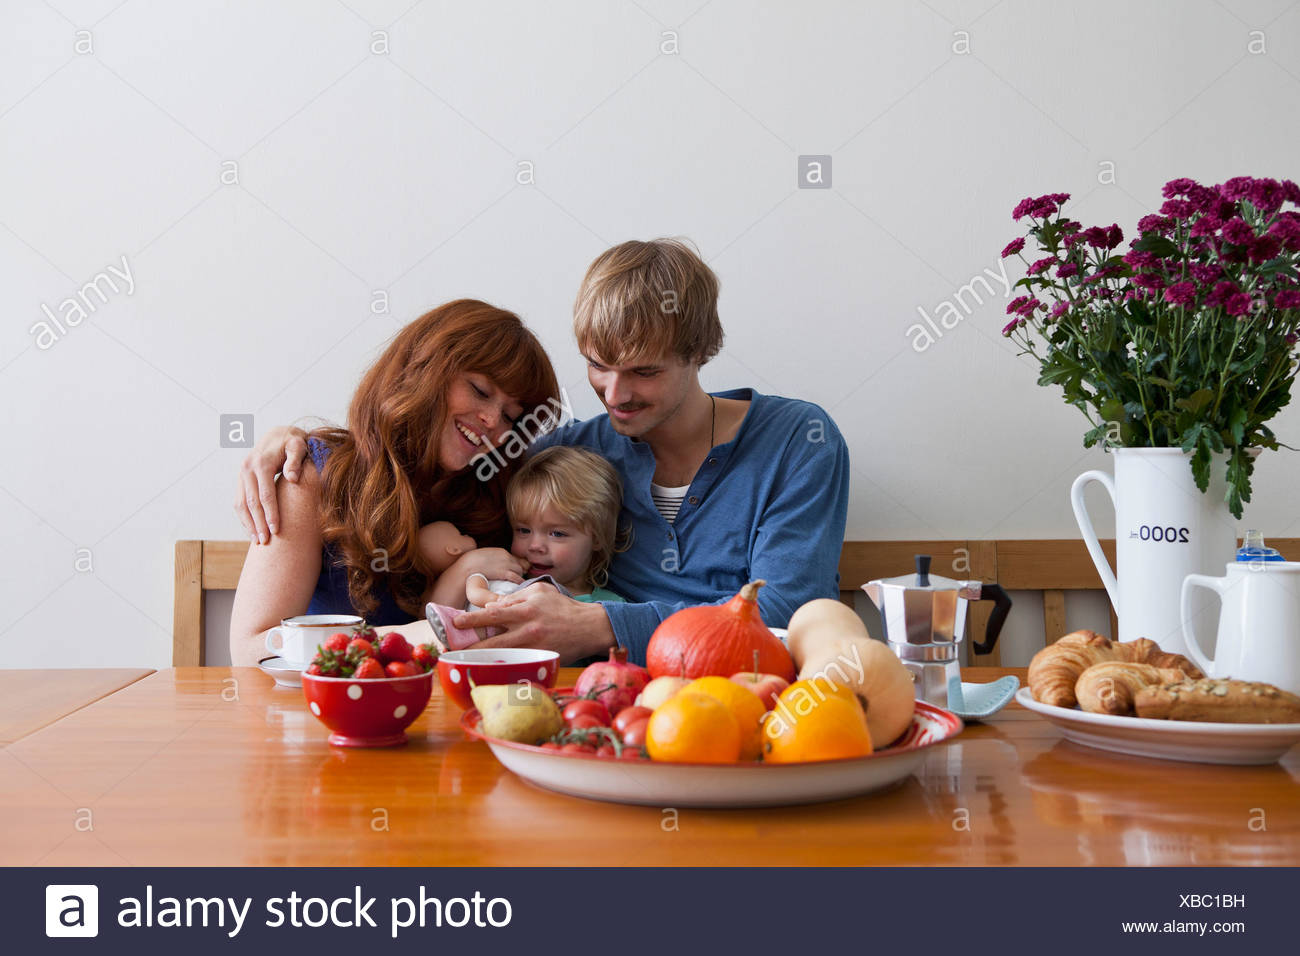 A young family sitting side by side having breakfast - Stock Image